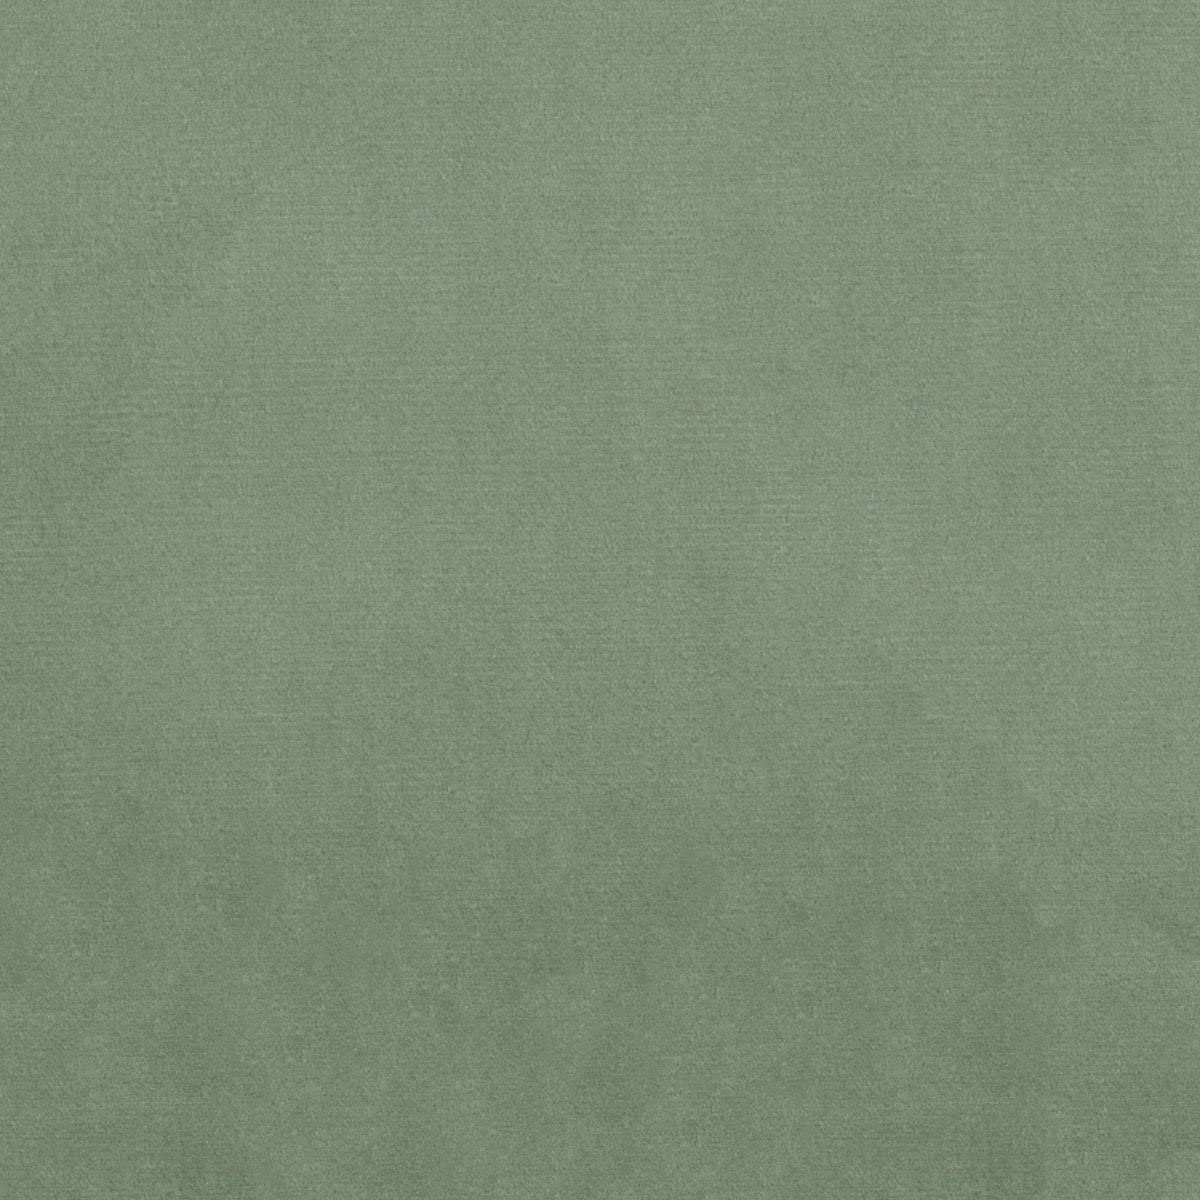 Outlet SALE Sage Green Solids Plain Woven Fabric New popularity the Upholstery ya by